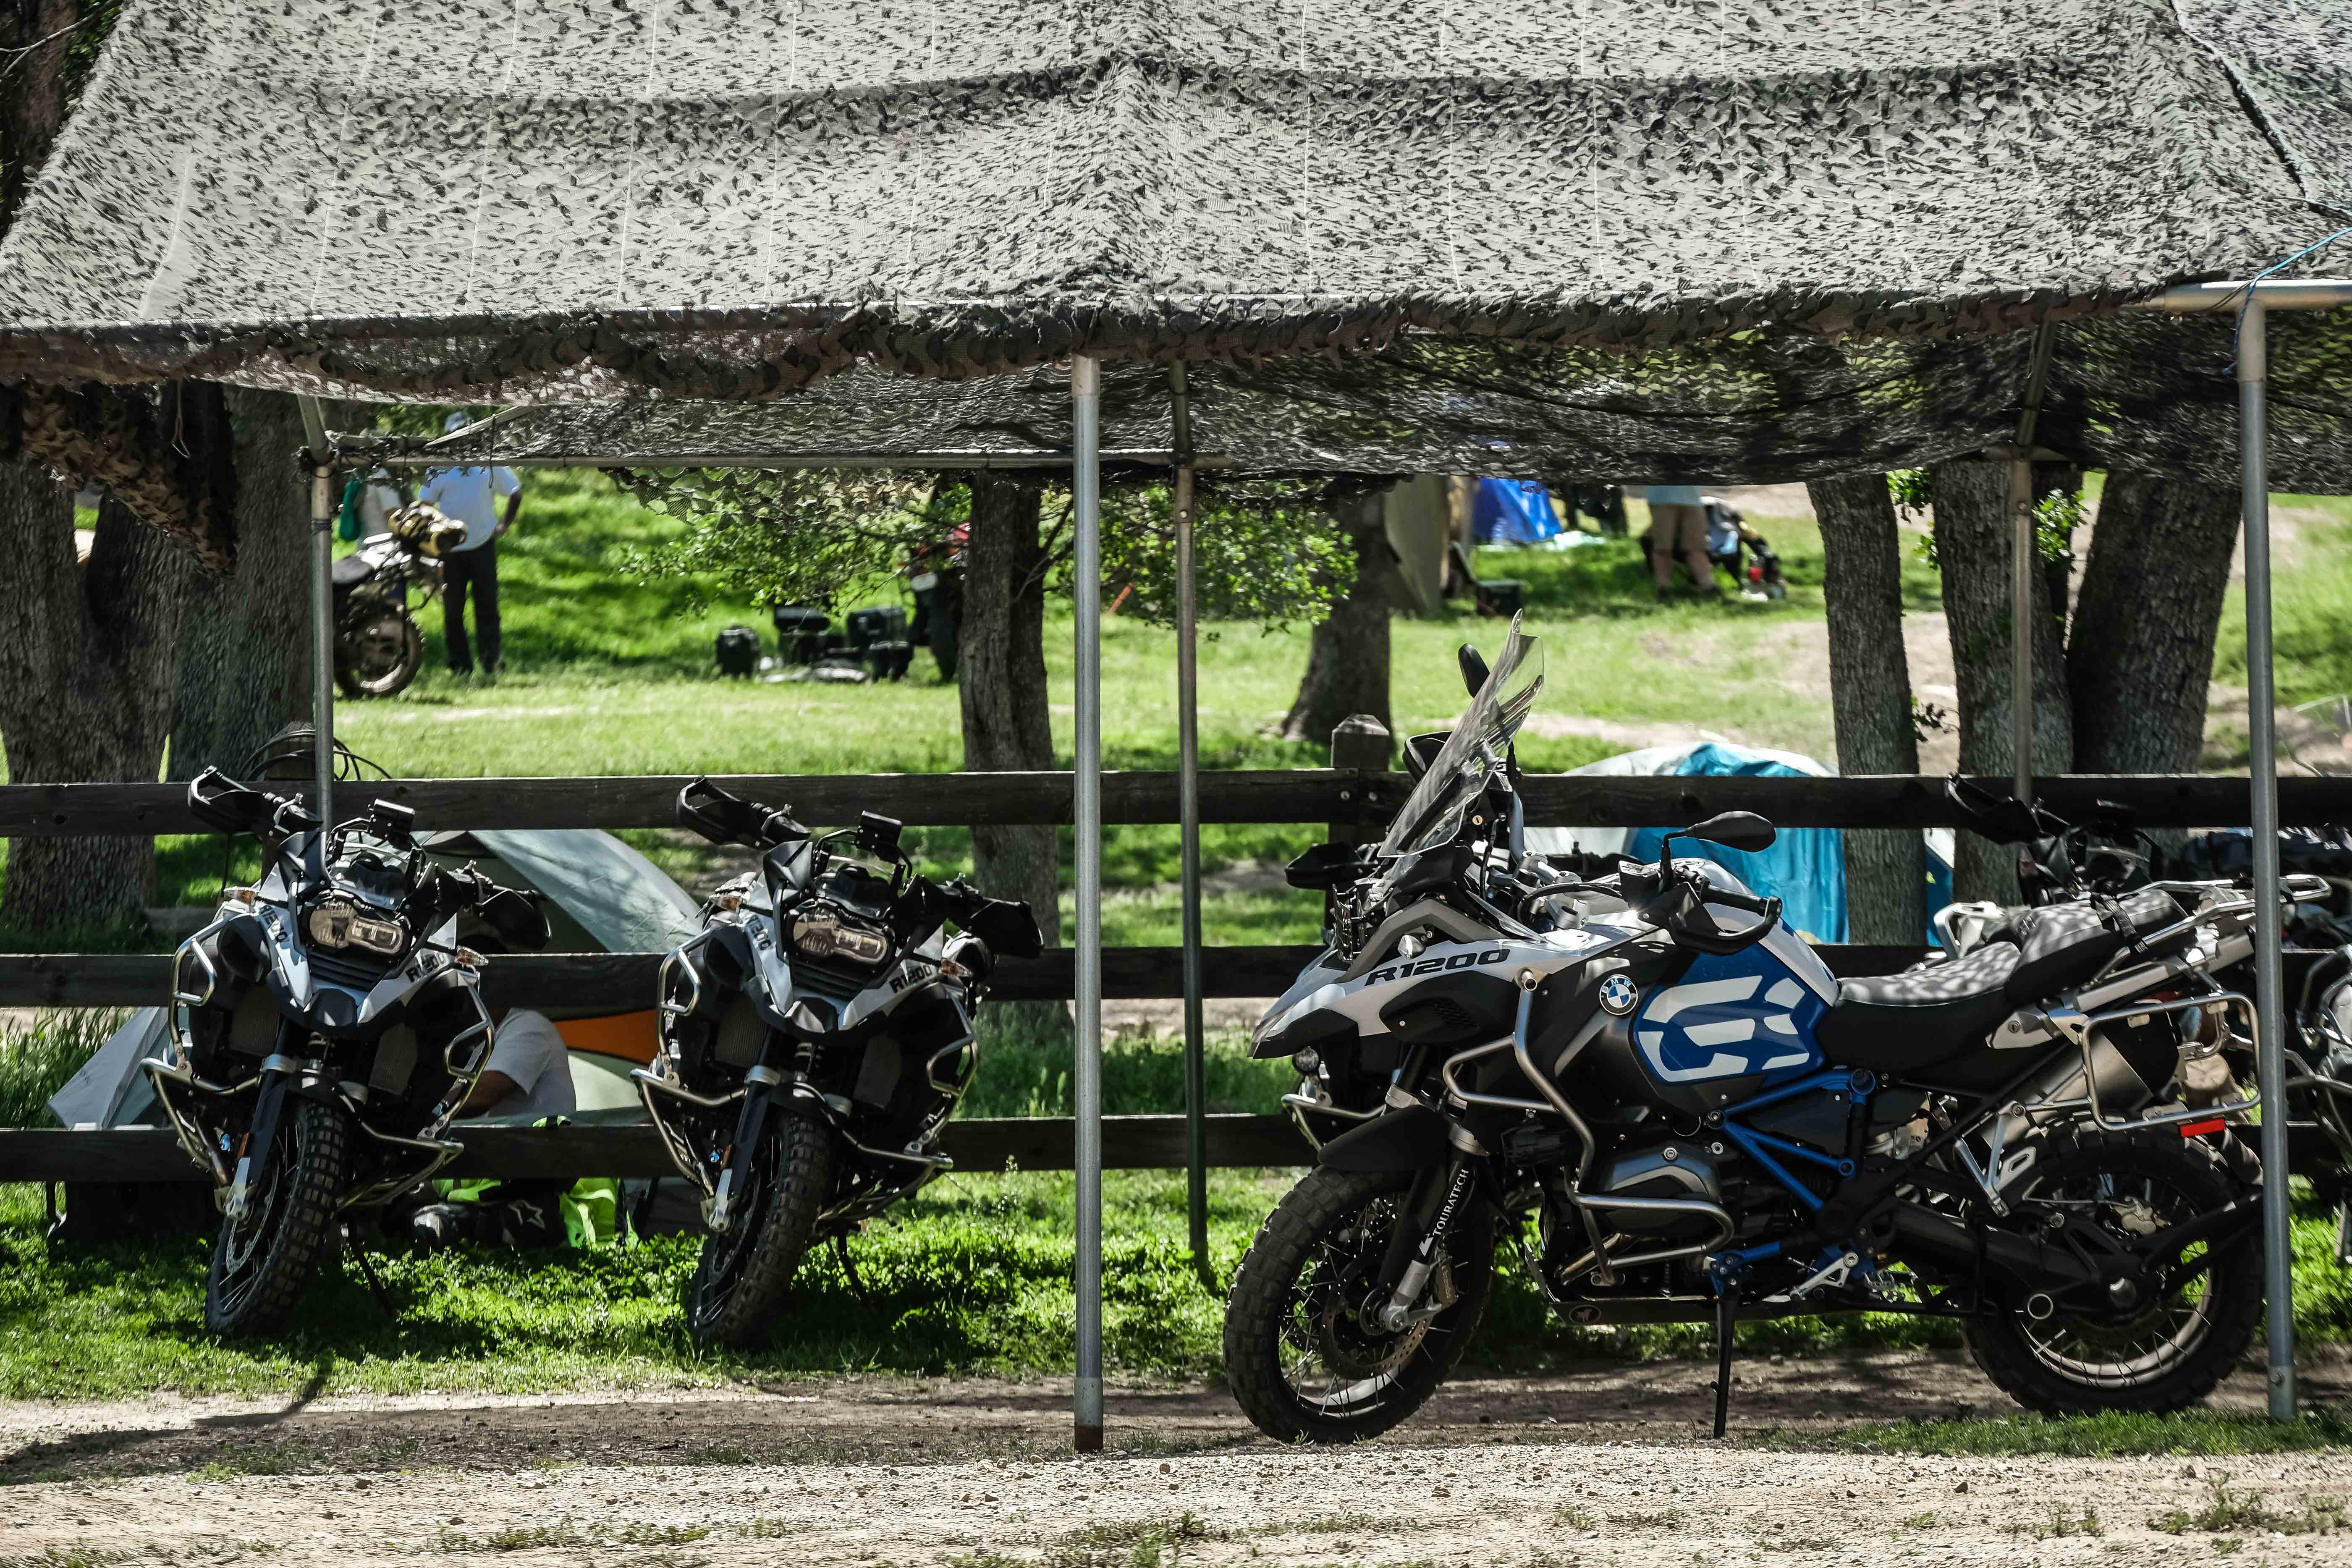 Rawhyde Adventure Days offer attendees the opportunity to ride all the new model year adventure bikes from BMW